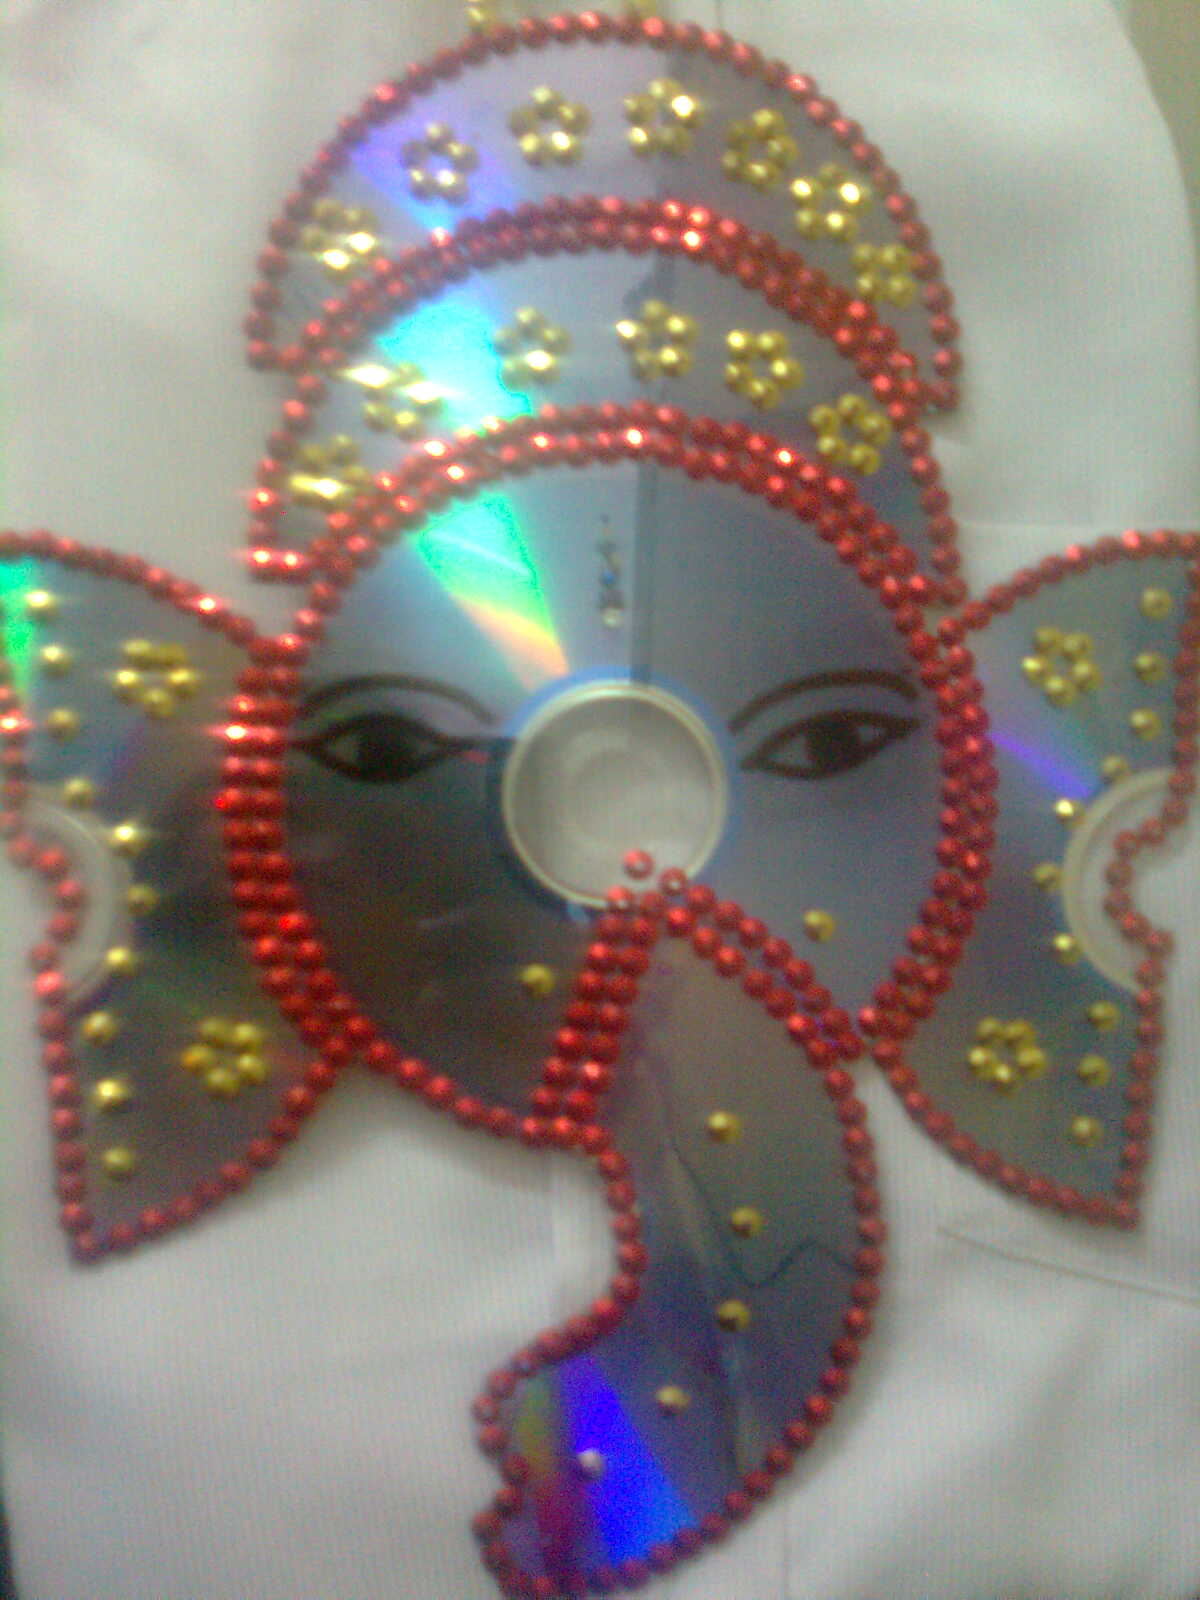 maha arts crafts cd ganesh vinayagar